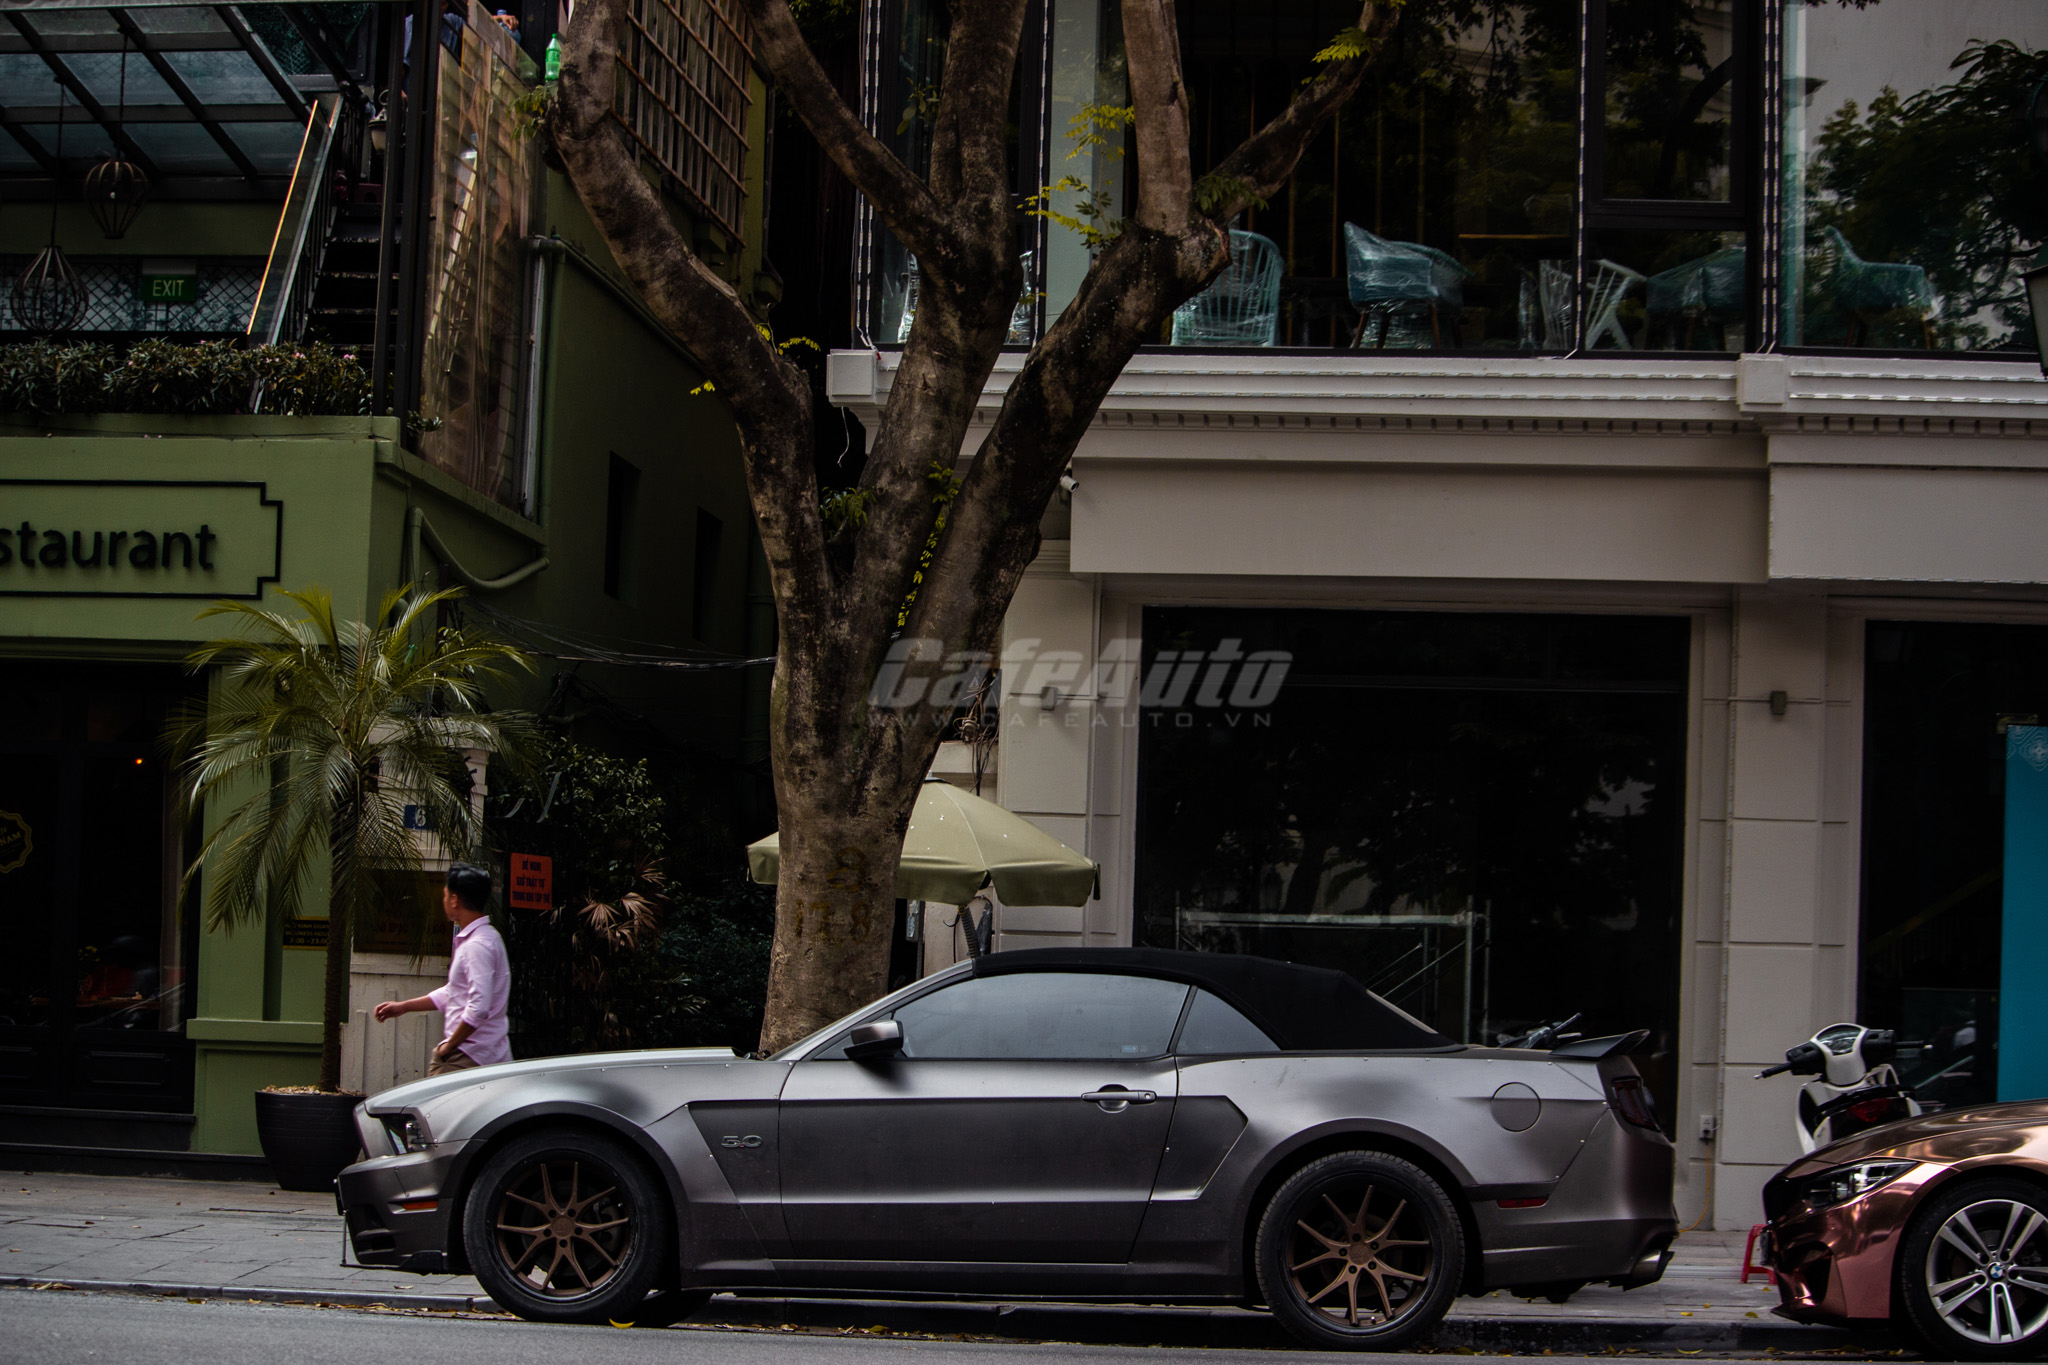 mustangGT-cafeautovn-5